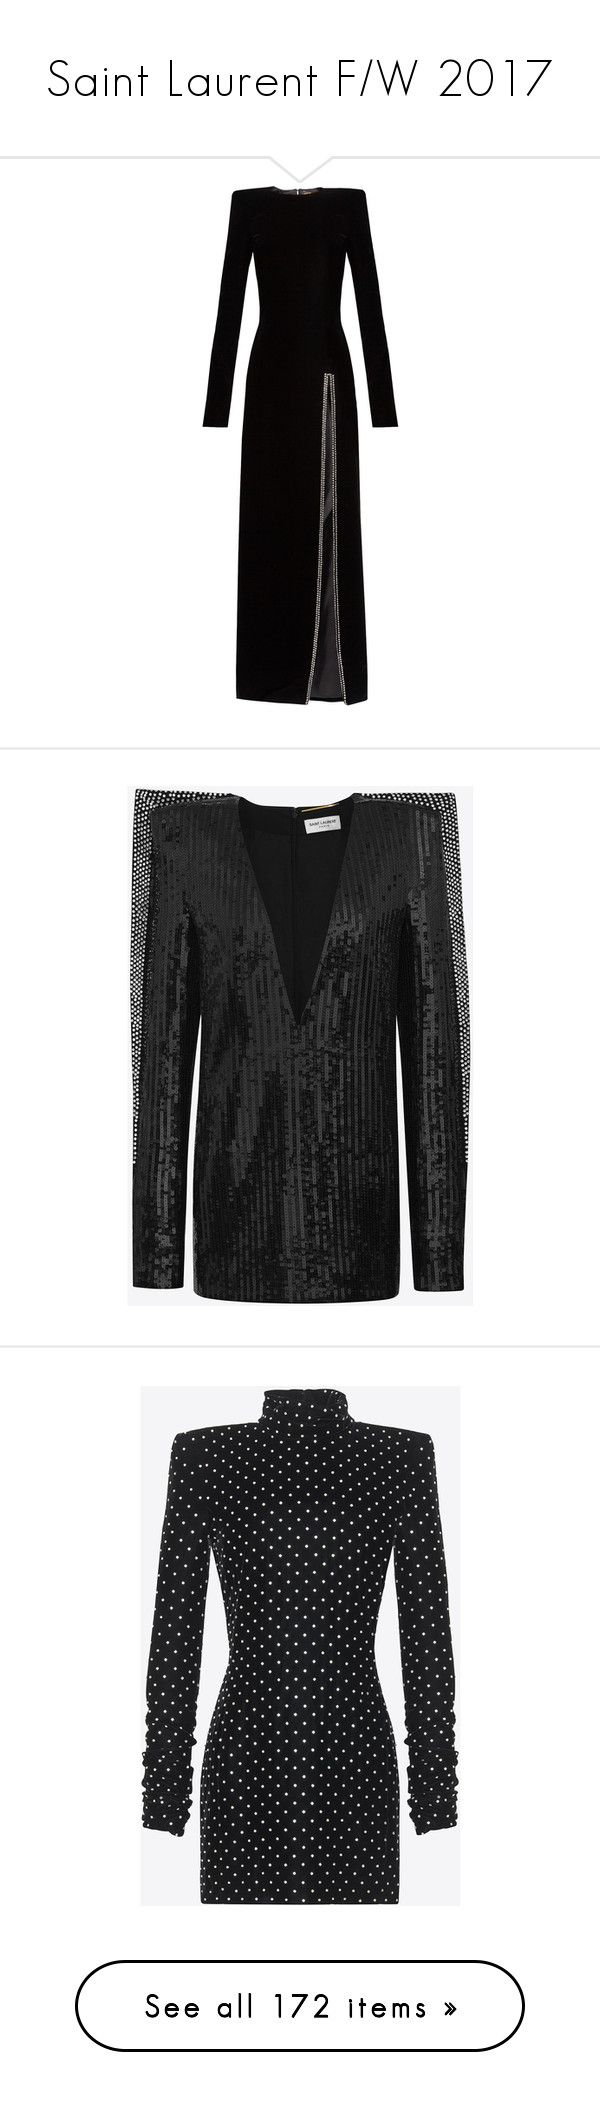 """""""Saint Laurent F/W 2017"""" by mariots22 ❤ liked on Polyvore featuring dresses, gowns, saint laurent, black, velvet dress, front slit dress, formal dresses, velvet evening gown, velvet formal gowns and gown"""